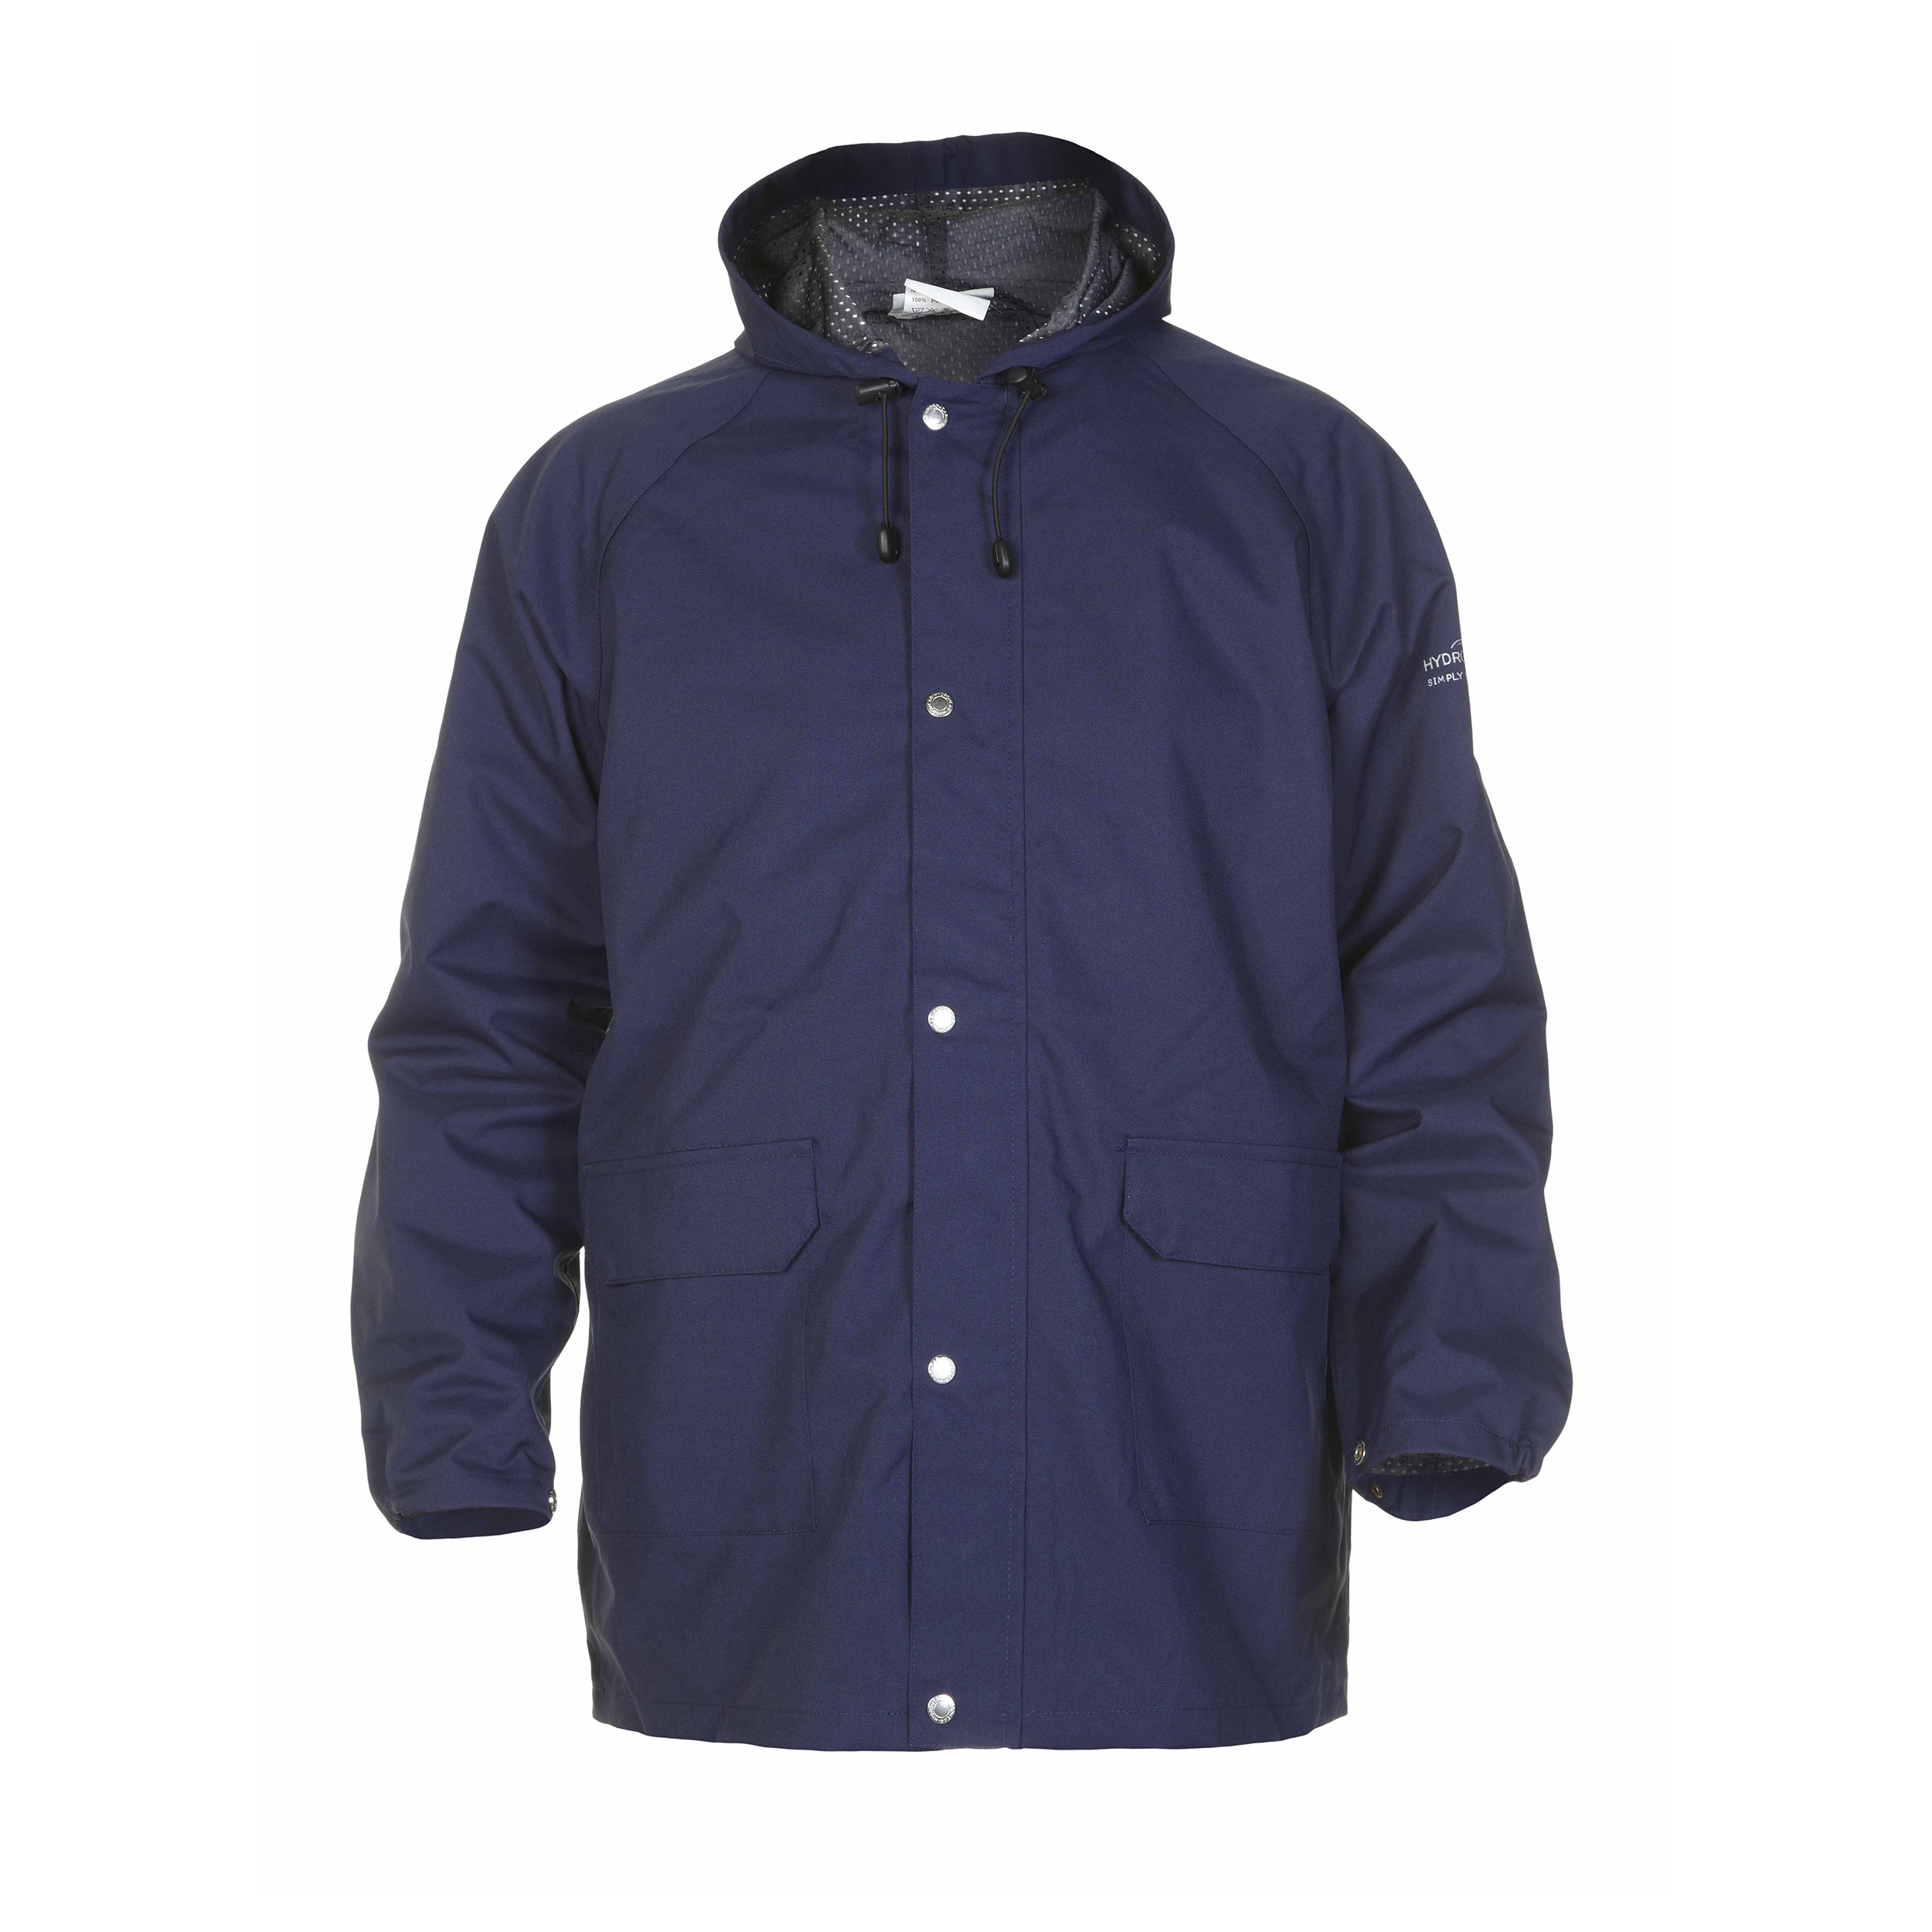 Mens coats or jackets Hydrowear Ulft SNS Waterproof Jacket Polyester Large Navy Blue Ref HYD072400NL *Up to 3 Day Leadtime*